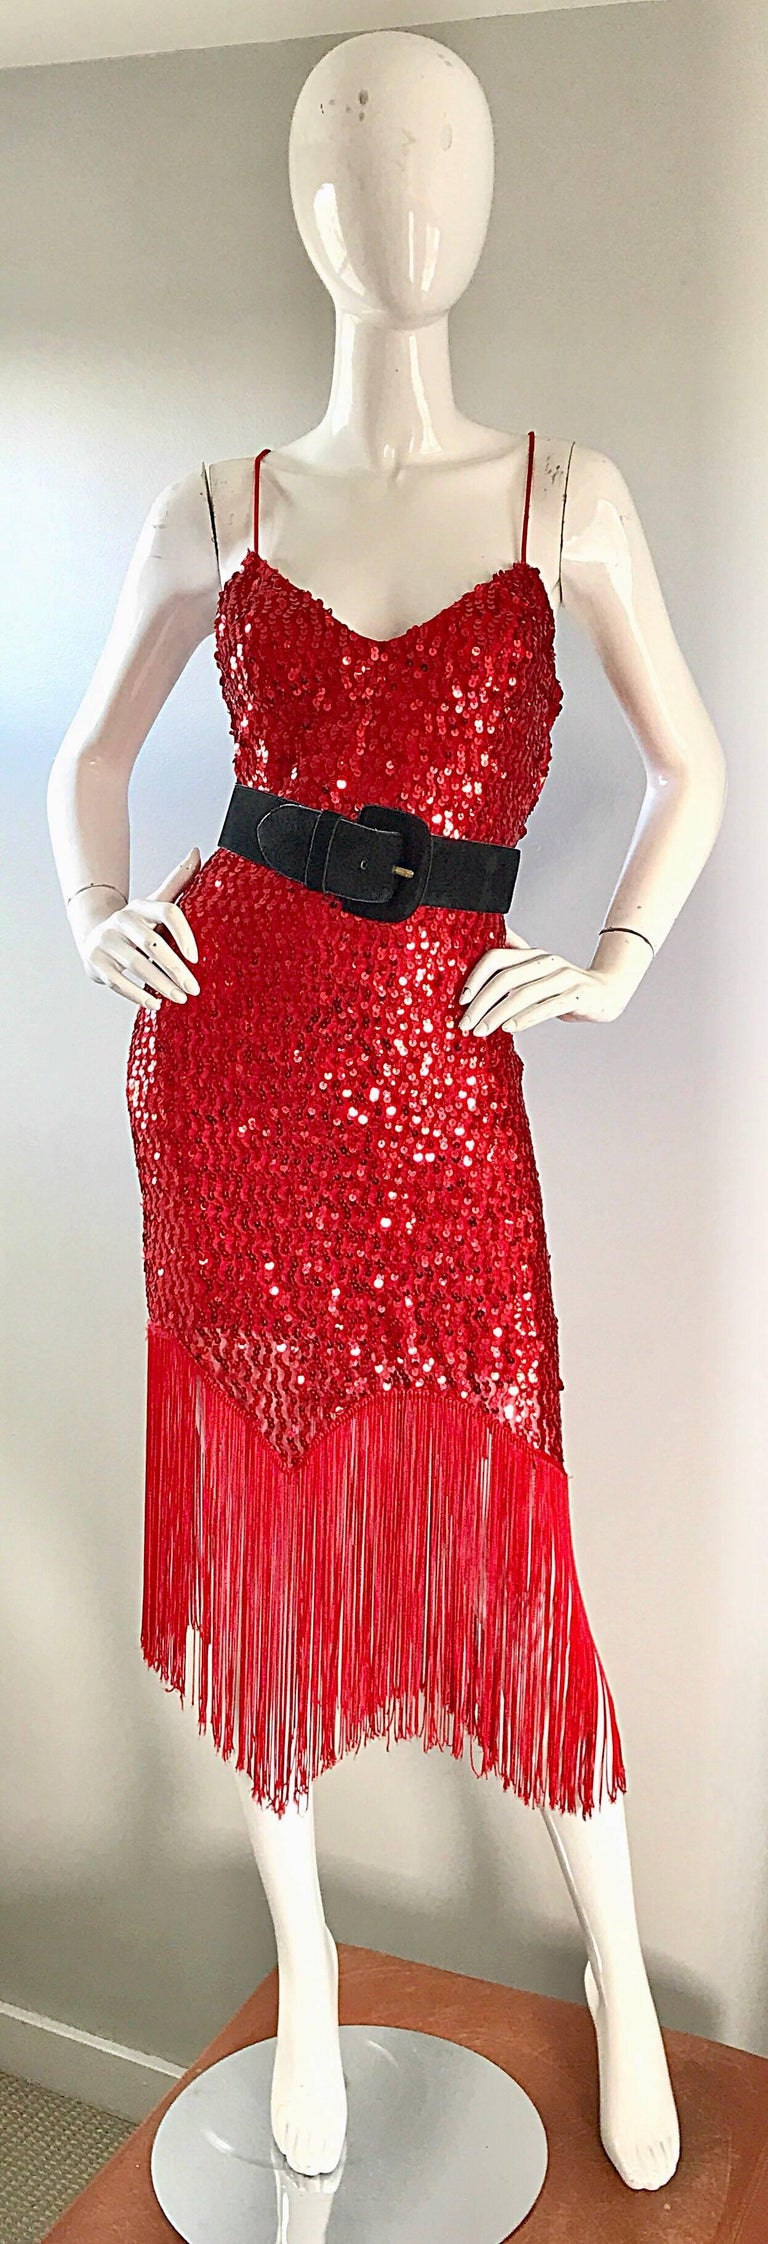 Women's Vintage Joy Stevens 1970s Does 1920s Flapper Style Sequin Sz 10 Fringe Red Dress For Sale